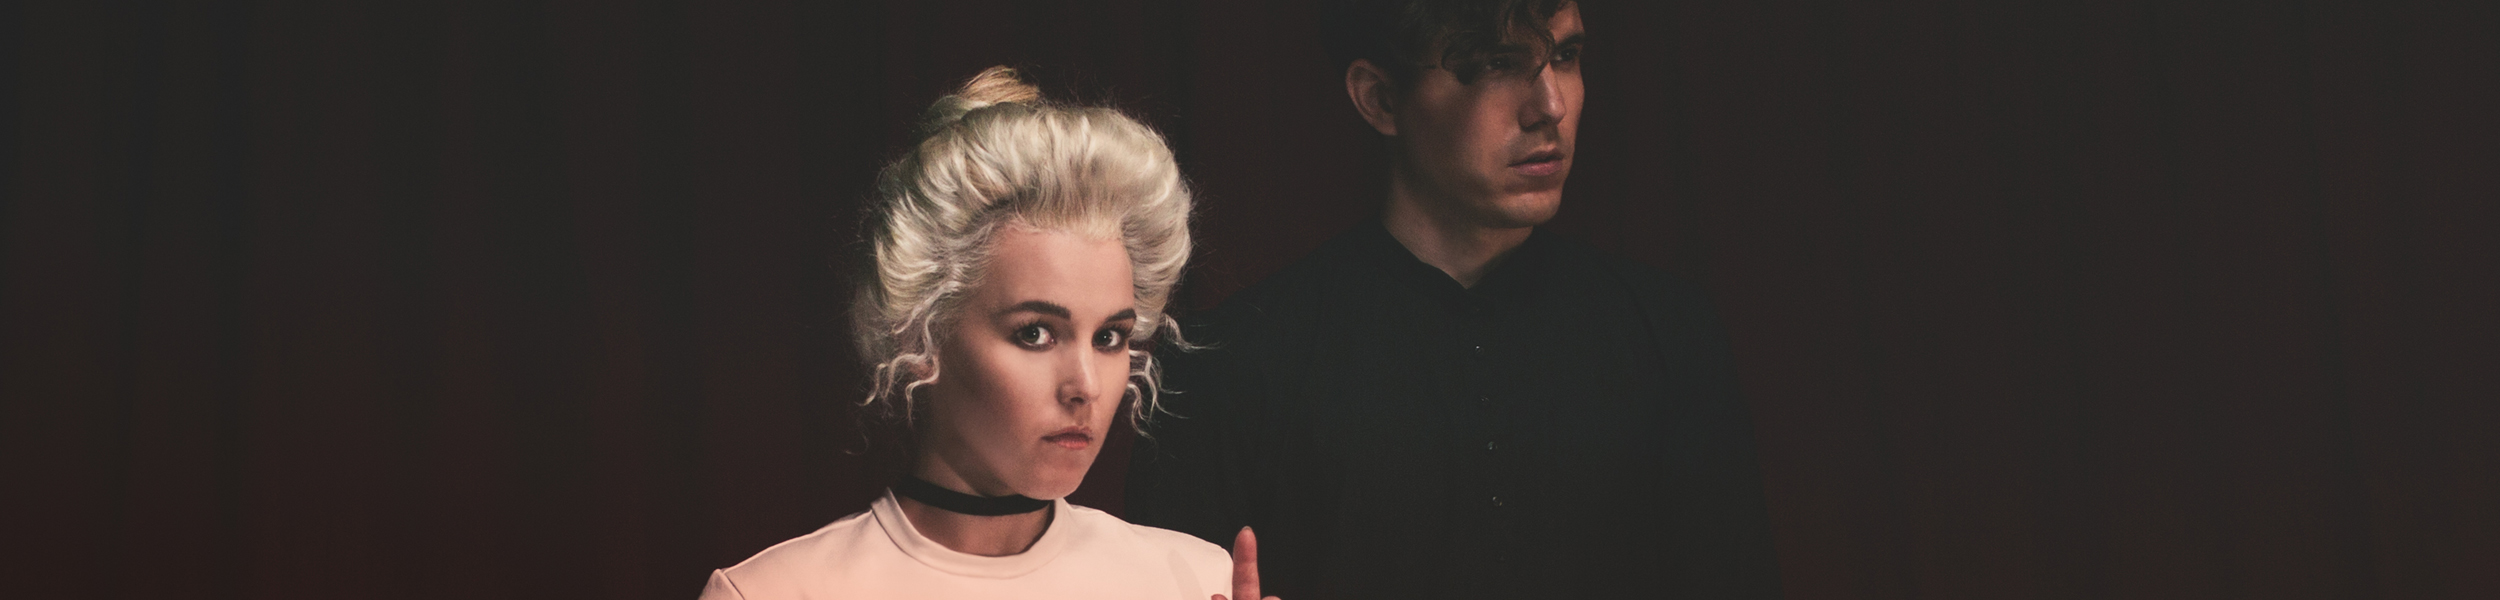 Purity Ring - Purity Ring unveil 'Belispeak' video